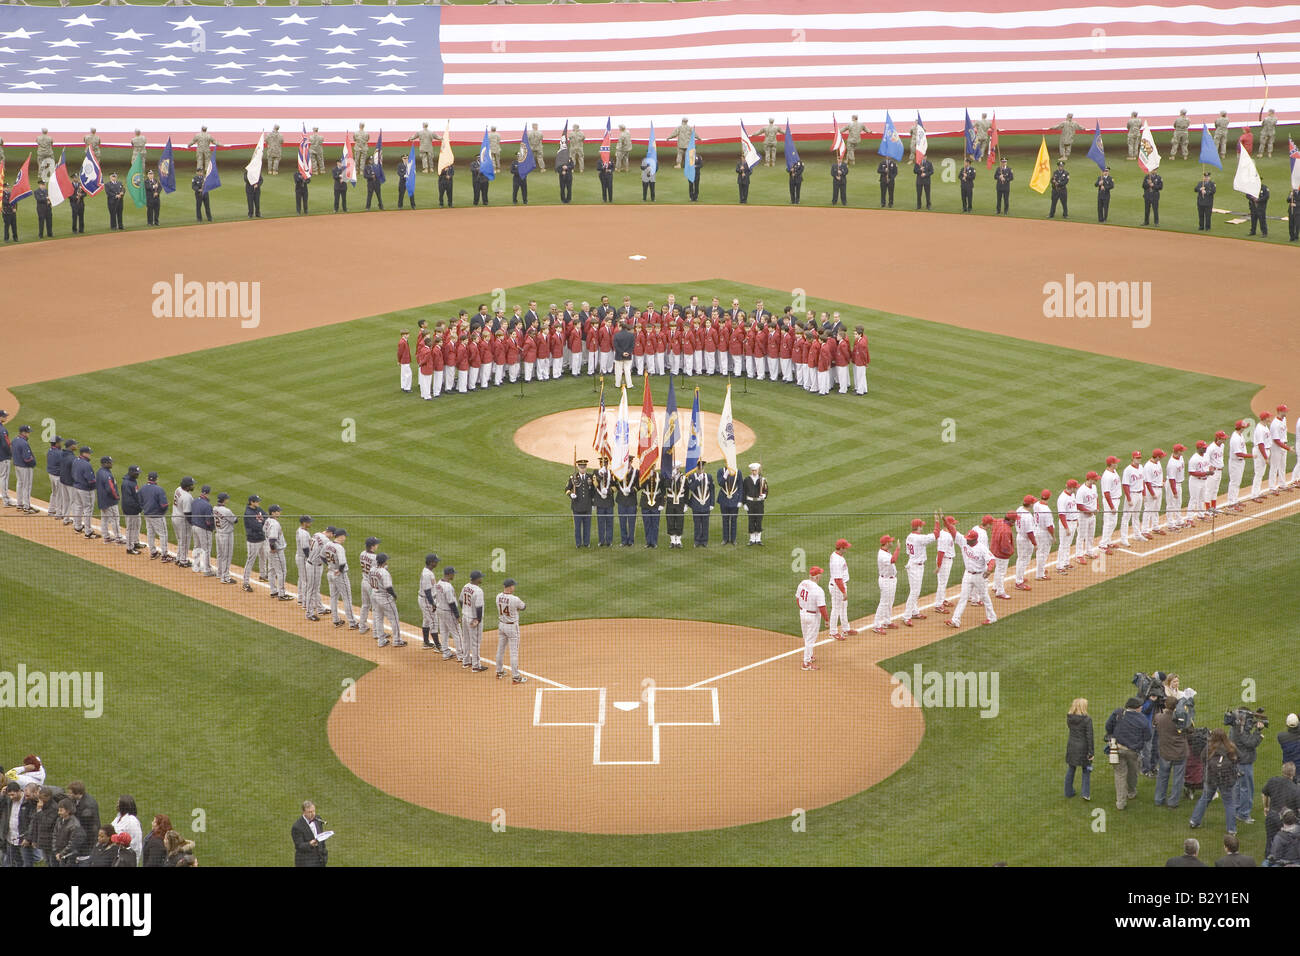 Opening Day Ceremonies featuring military color guard, boys choir, Philadelphia PA - Stock Image